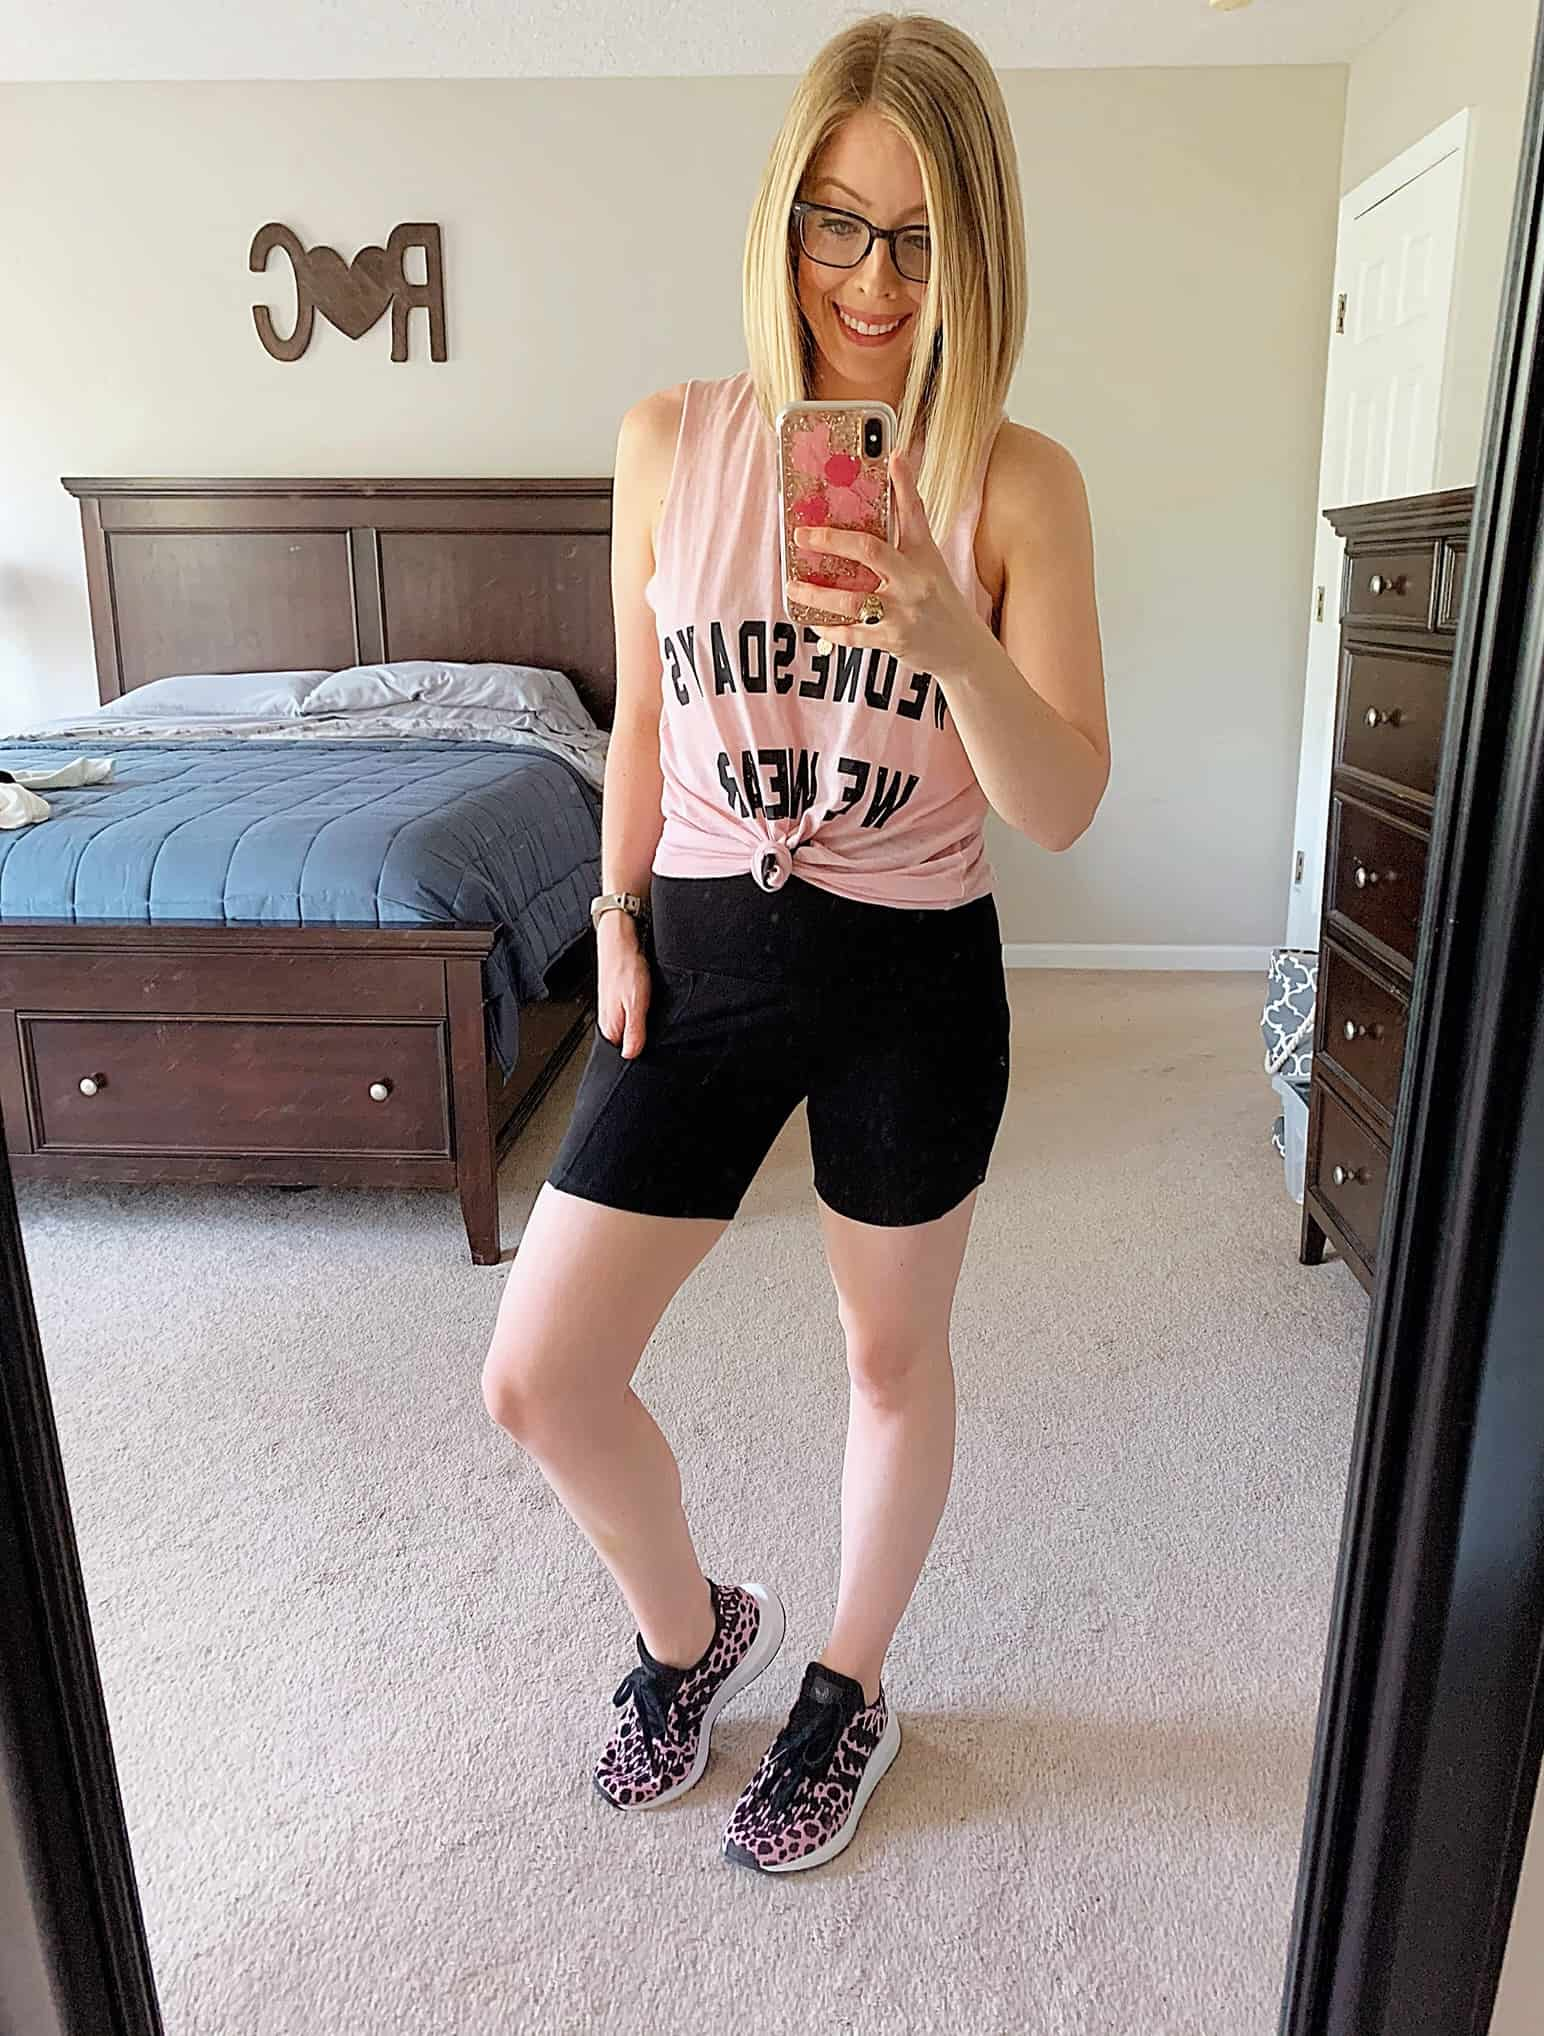 Sharing my April Amazon Favorites with 5 Affordable + Comfy Outfits to wear at home for lounging or working out. #amazonhaul #amazonfashion #springfashion #affordablefashion